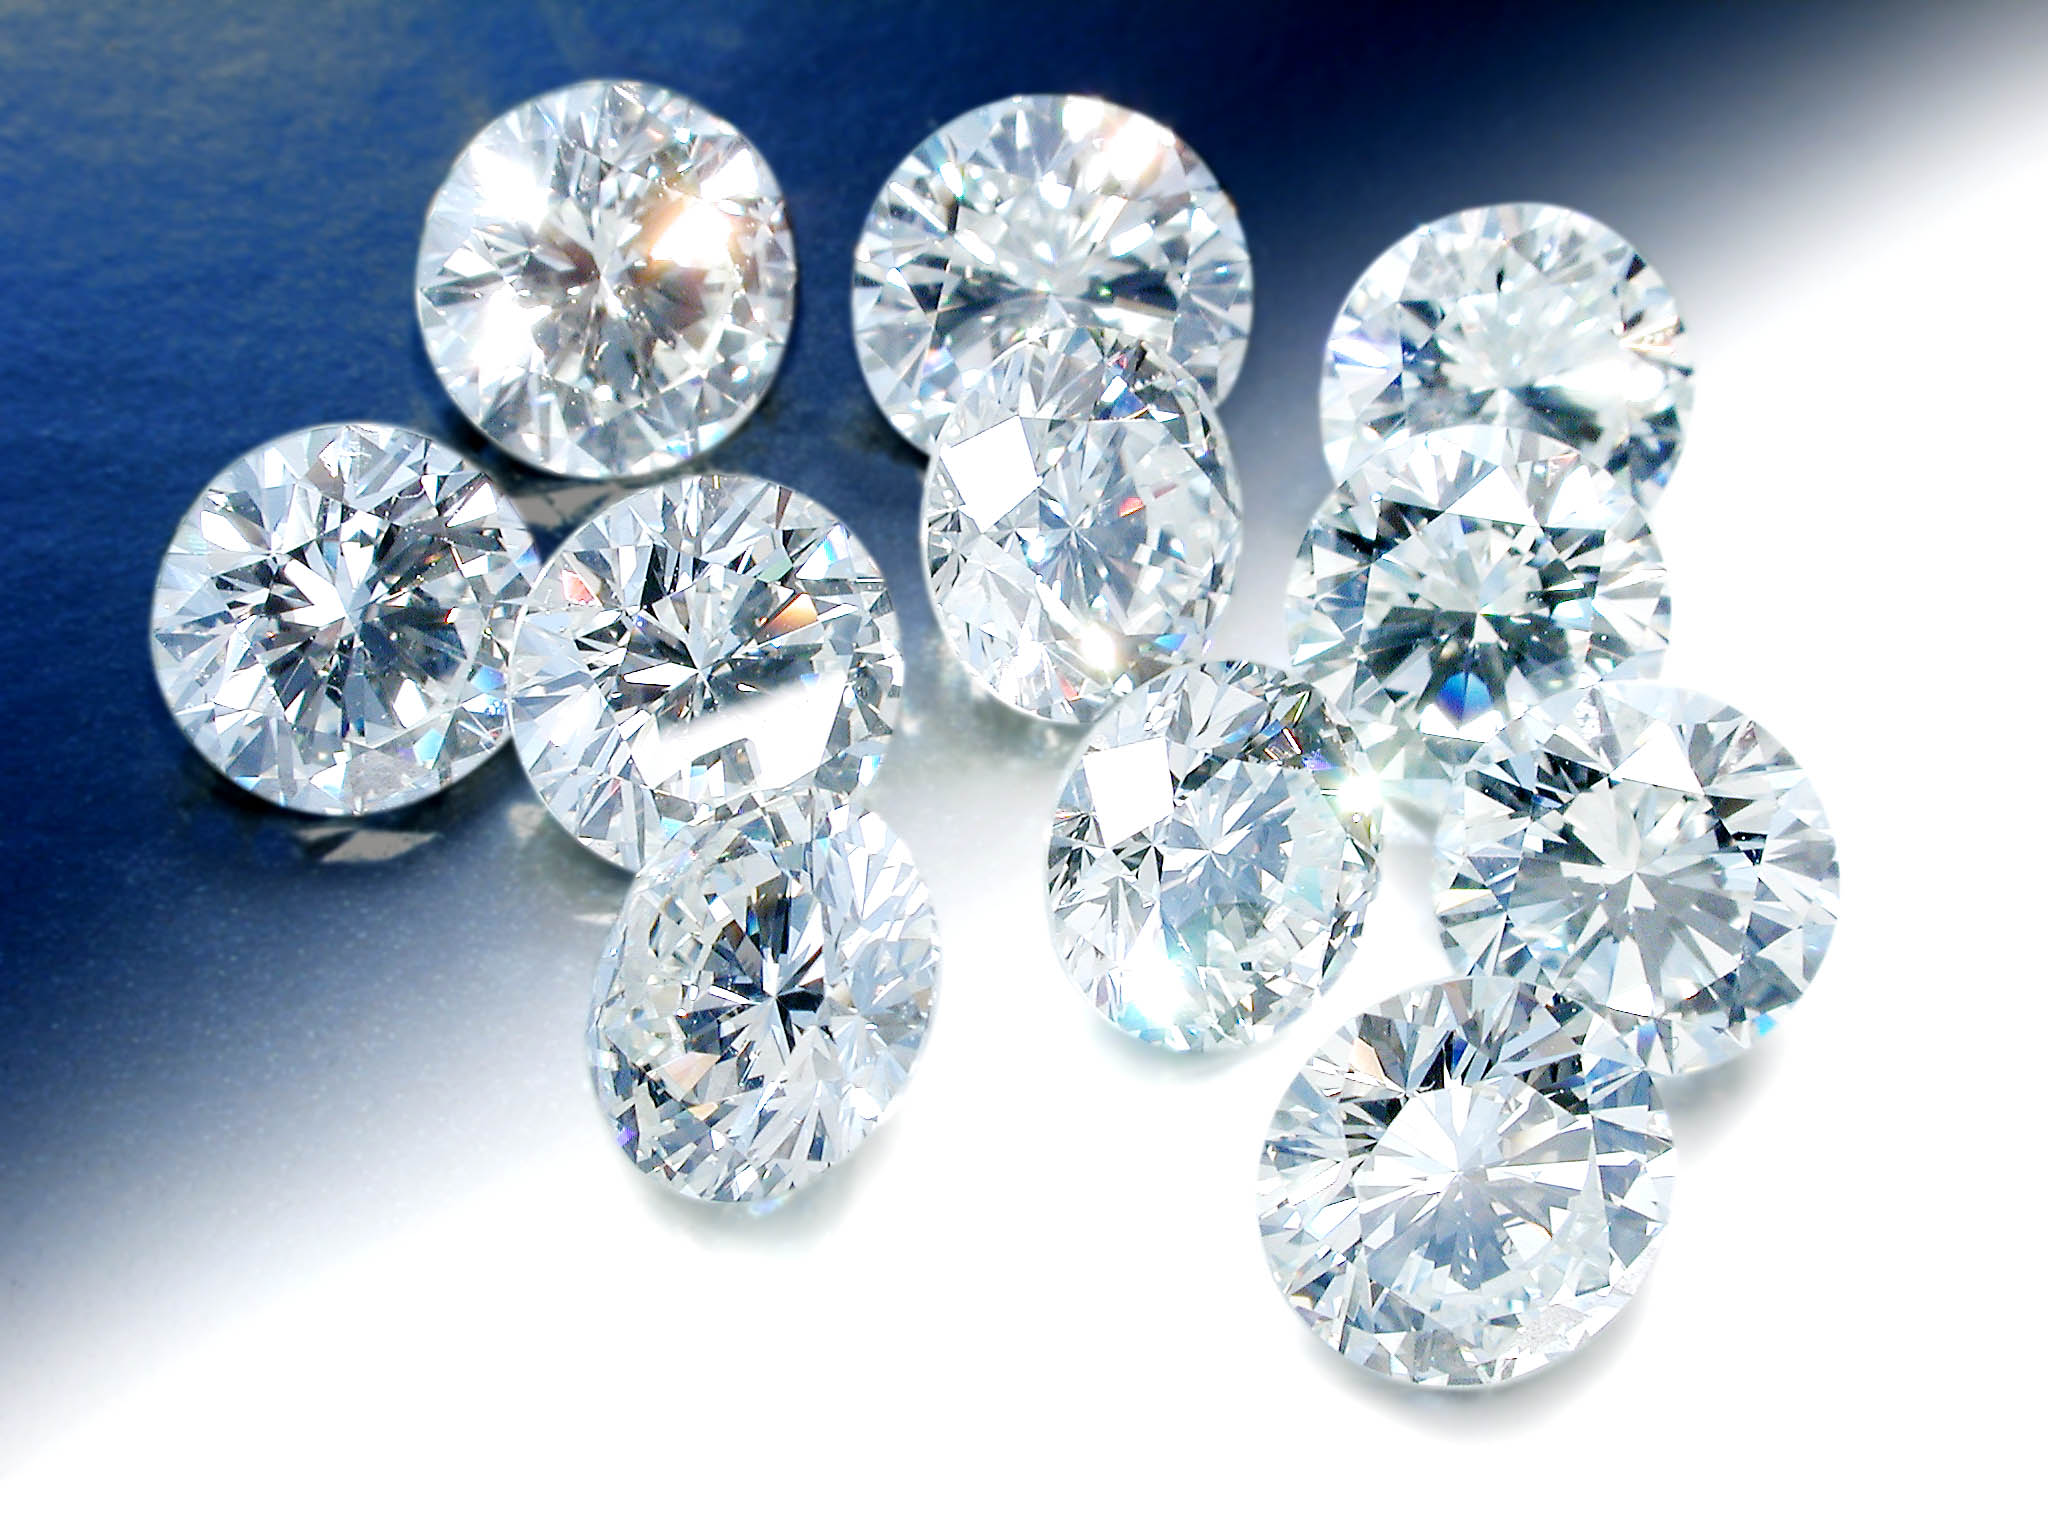 Where To Sell Loose Diamonds Online Sell My Diamond Jewelry Sell Engageme